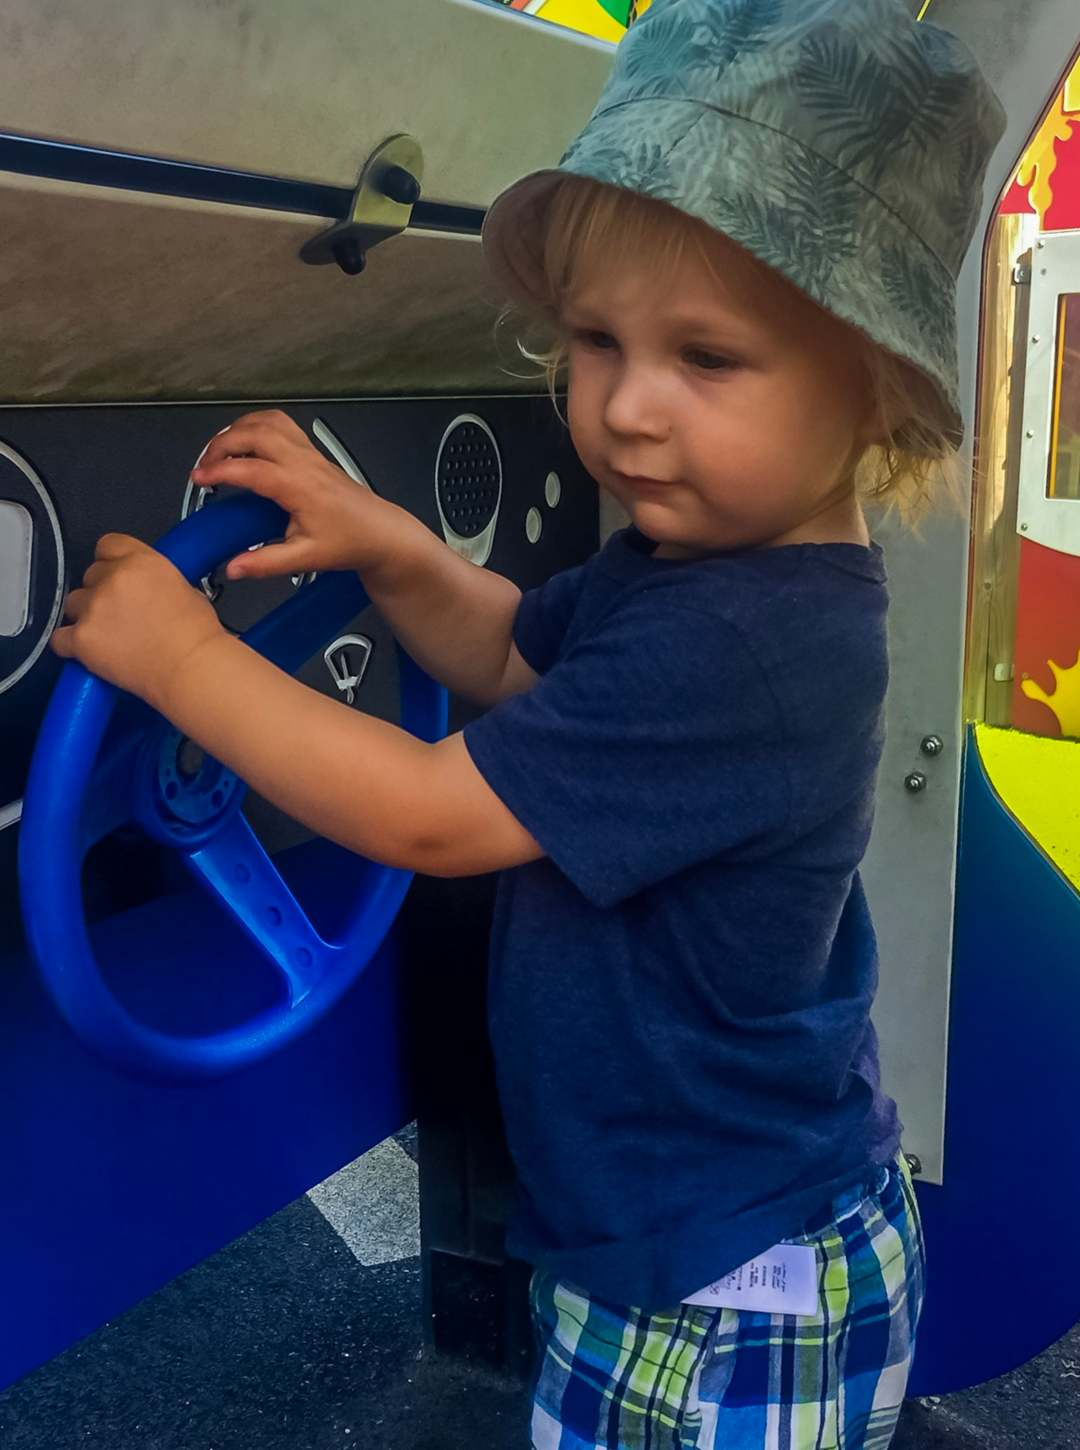 A little boy playing in then police car at Brickville which is part of DUPLO® Valley at LEGOLAND® Windsor Resort - LEGOLAND® Windsor Resort - A Review - Mrs H's favourite things